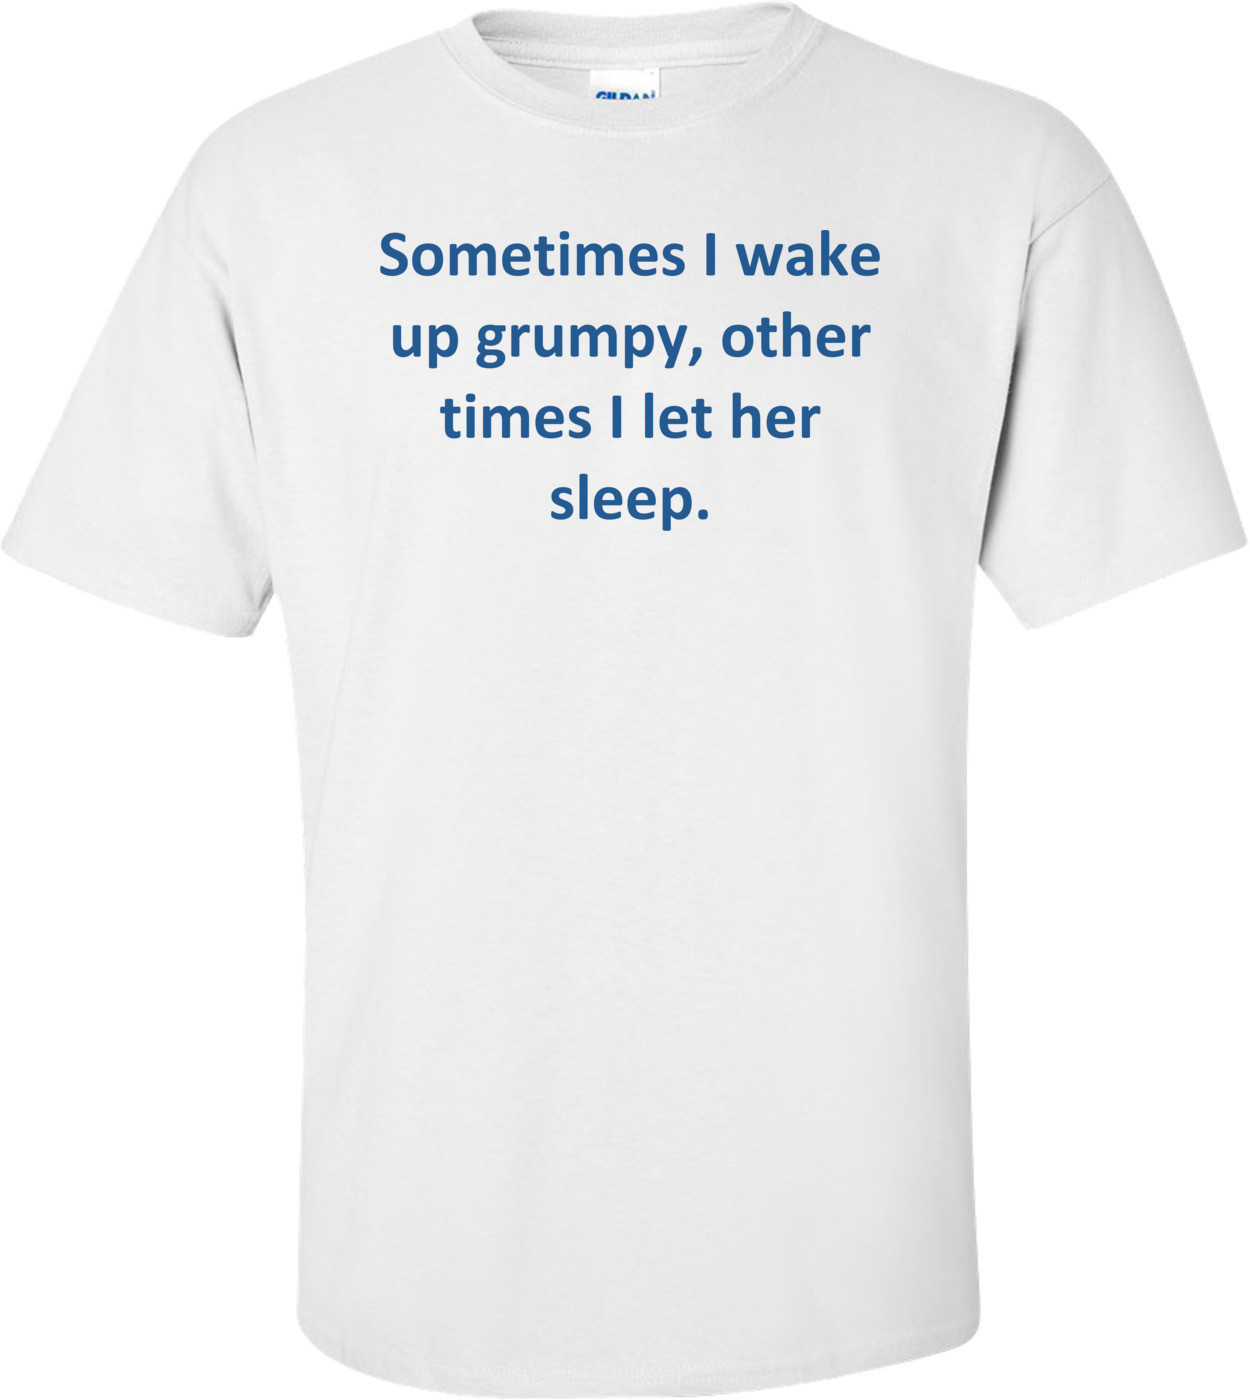 Sometimes I wake up grumpy, other times I let her sleep. Shirt